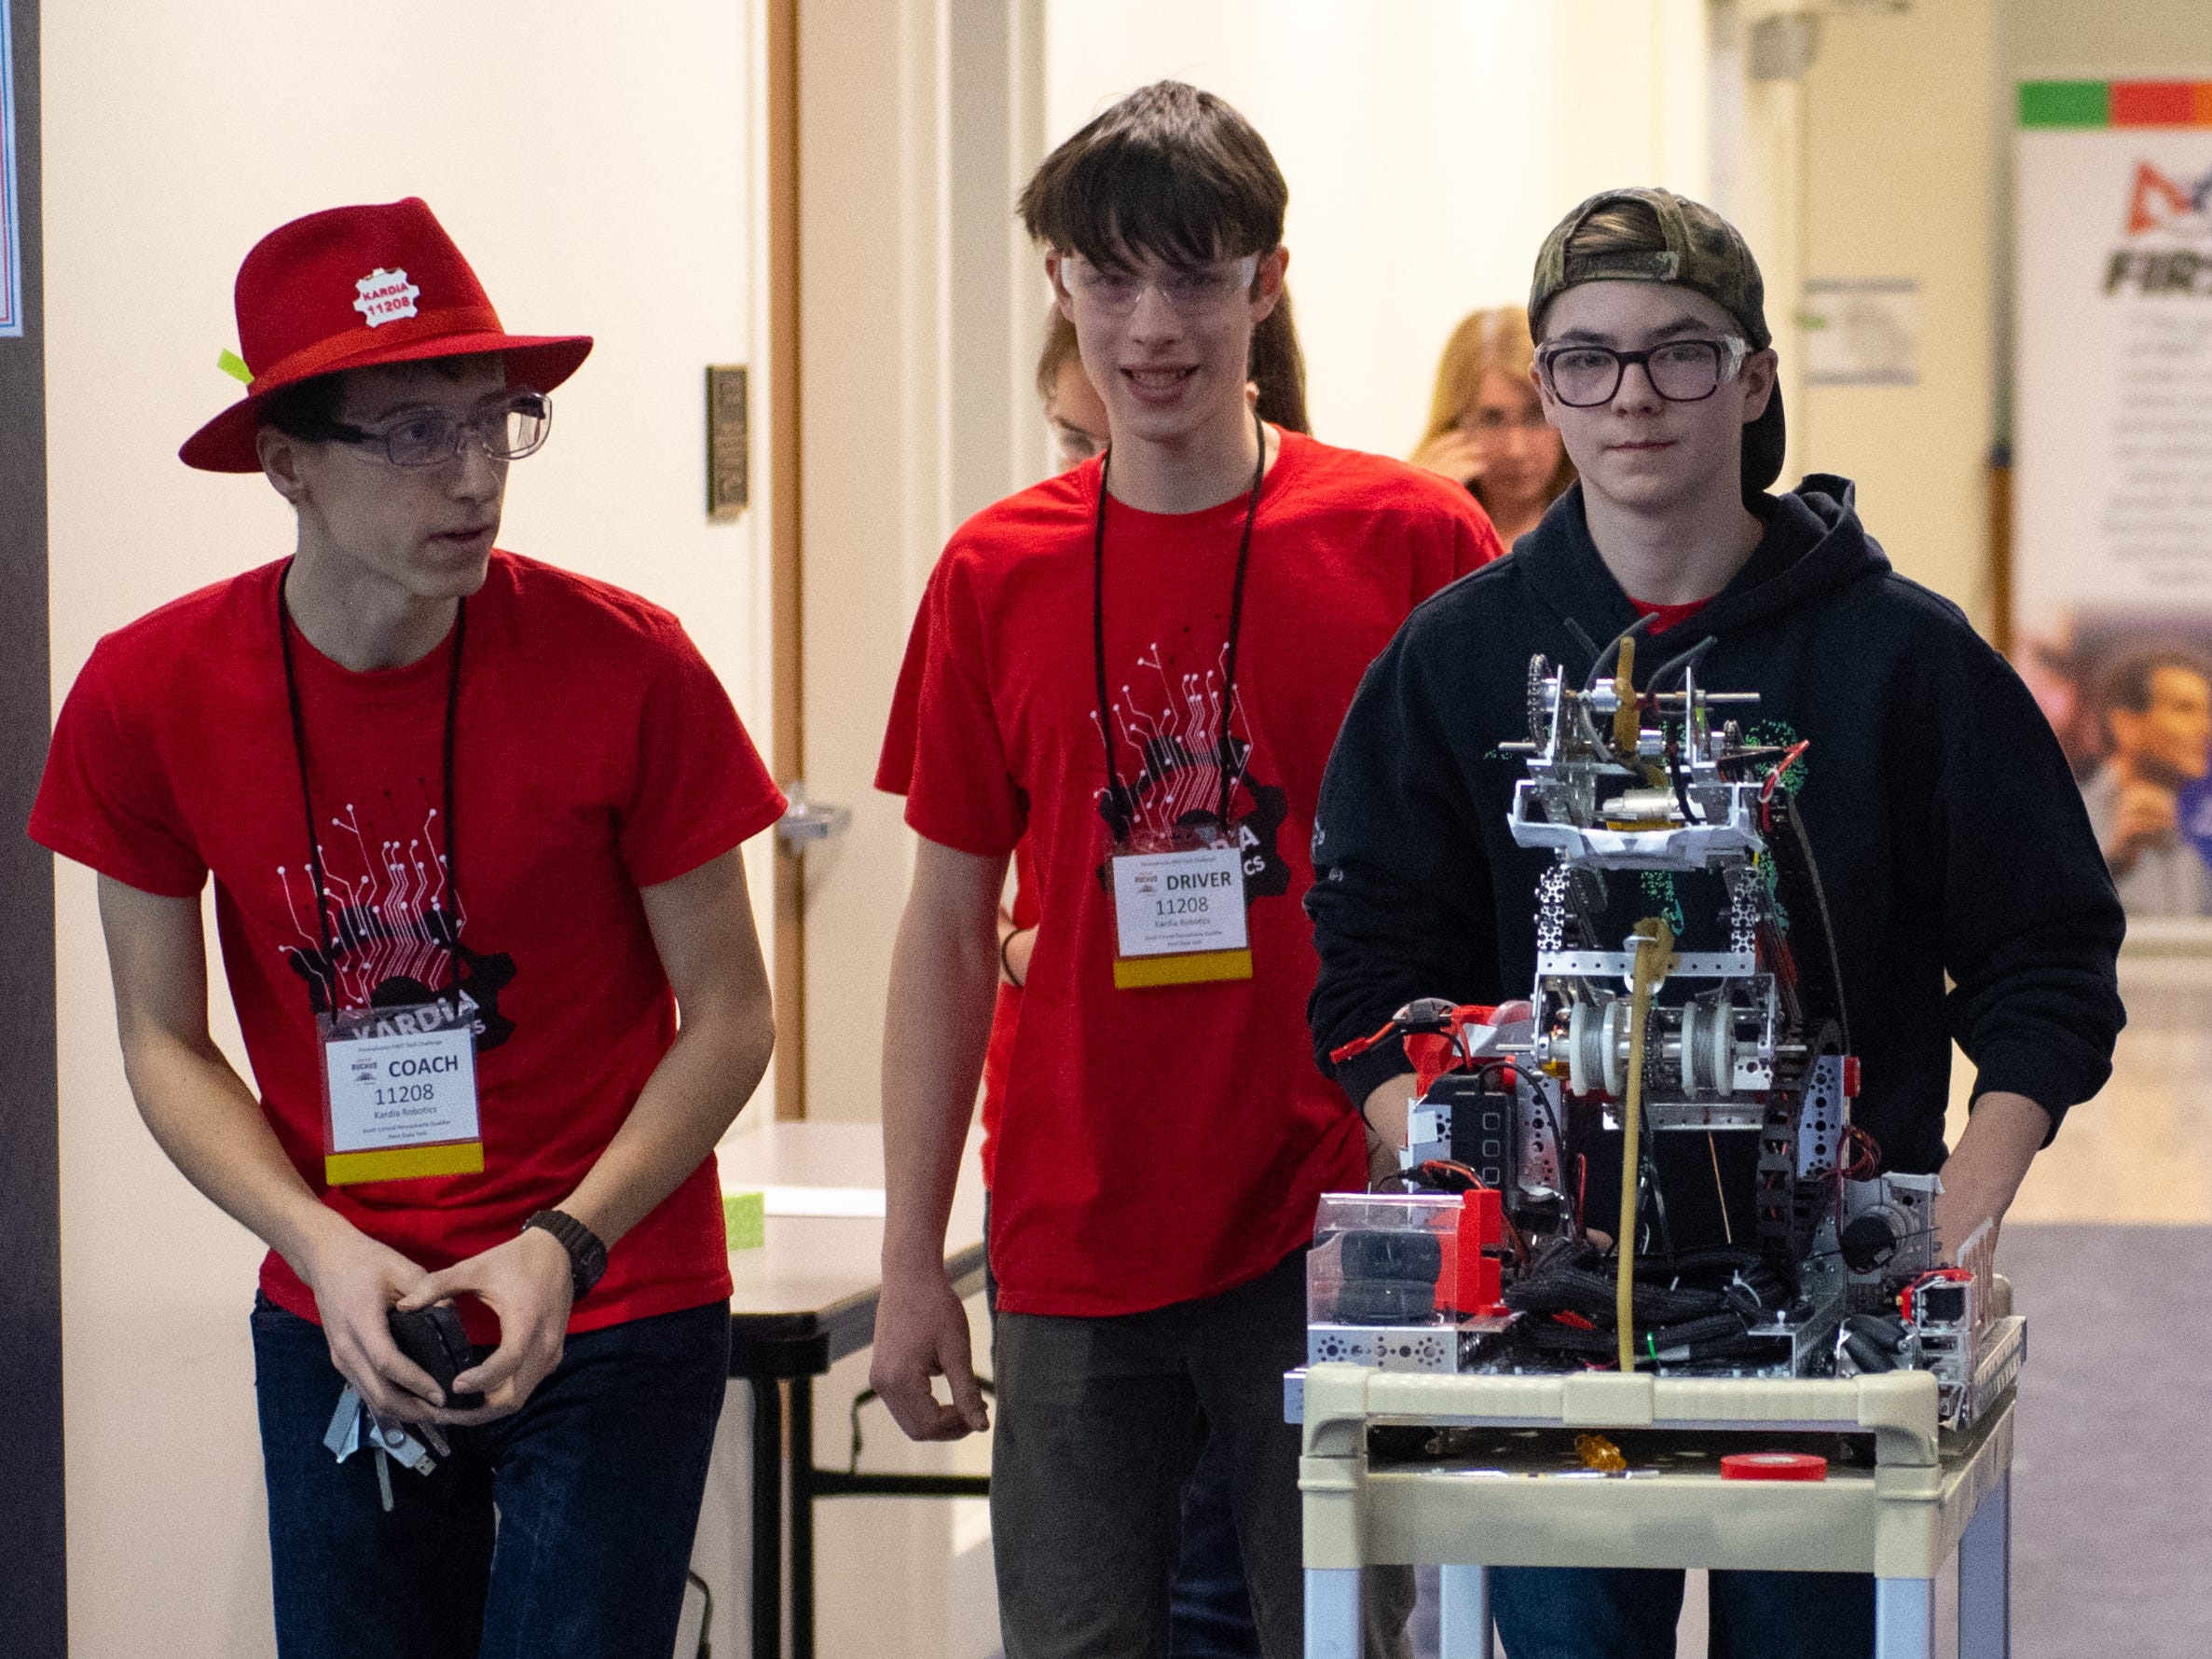 As the First Tech Challenge robotics competition goes on, more and more teams wheel their robots out to the main floor, February 2, 2019.